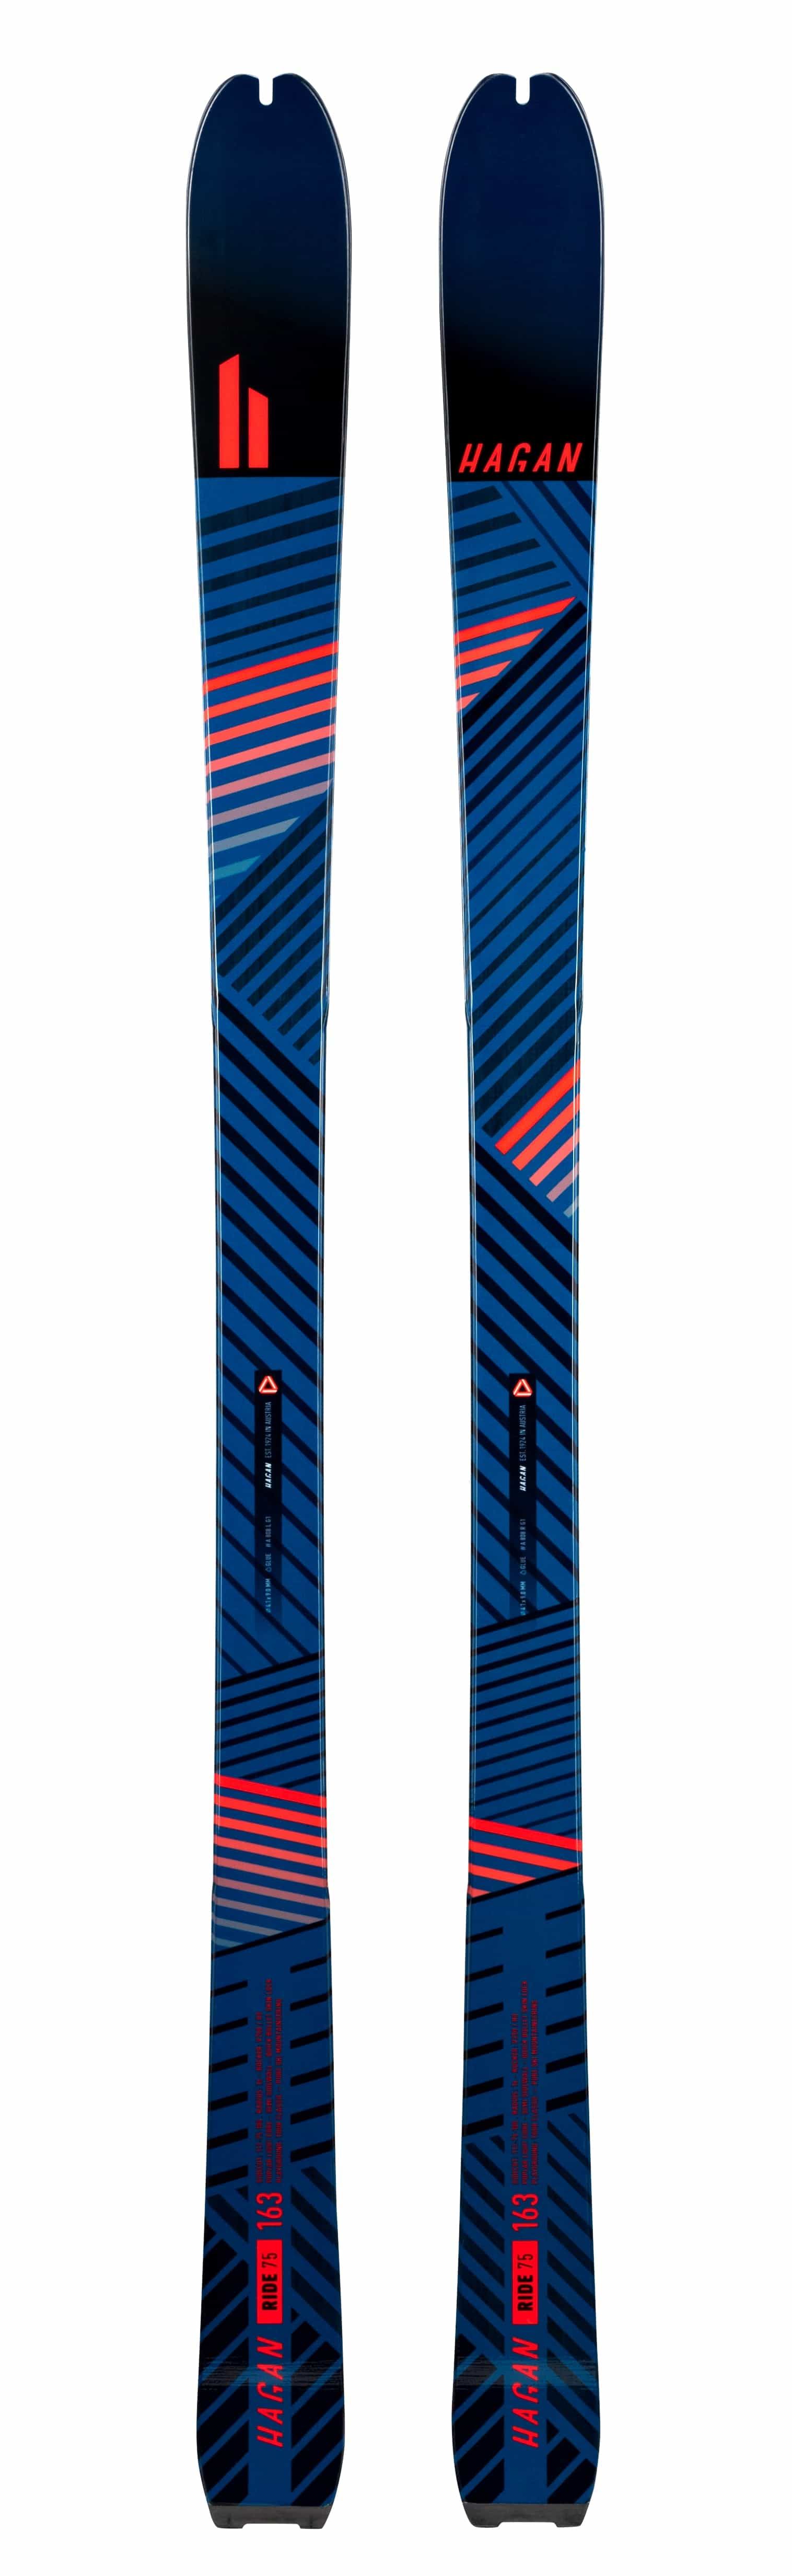 Ride 75 - On sale for $299.99, Skis - Hagan Ski Mountaineering Alpine Ski Touring Backcountry Gear